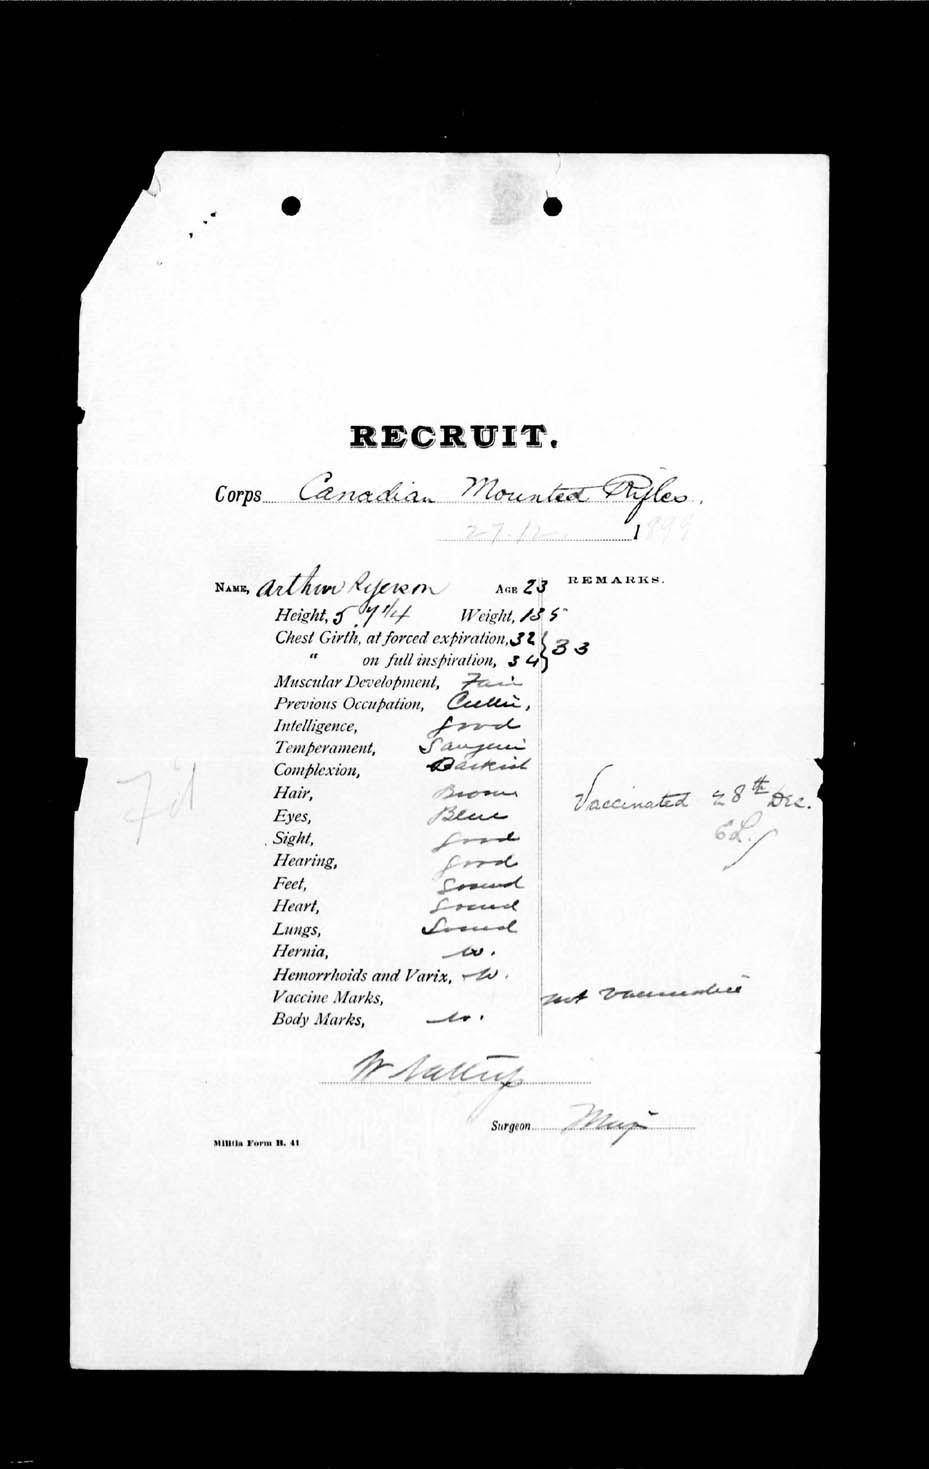 Digitized page of Boer War for Image No.: e002199328